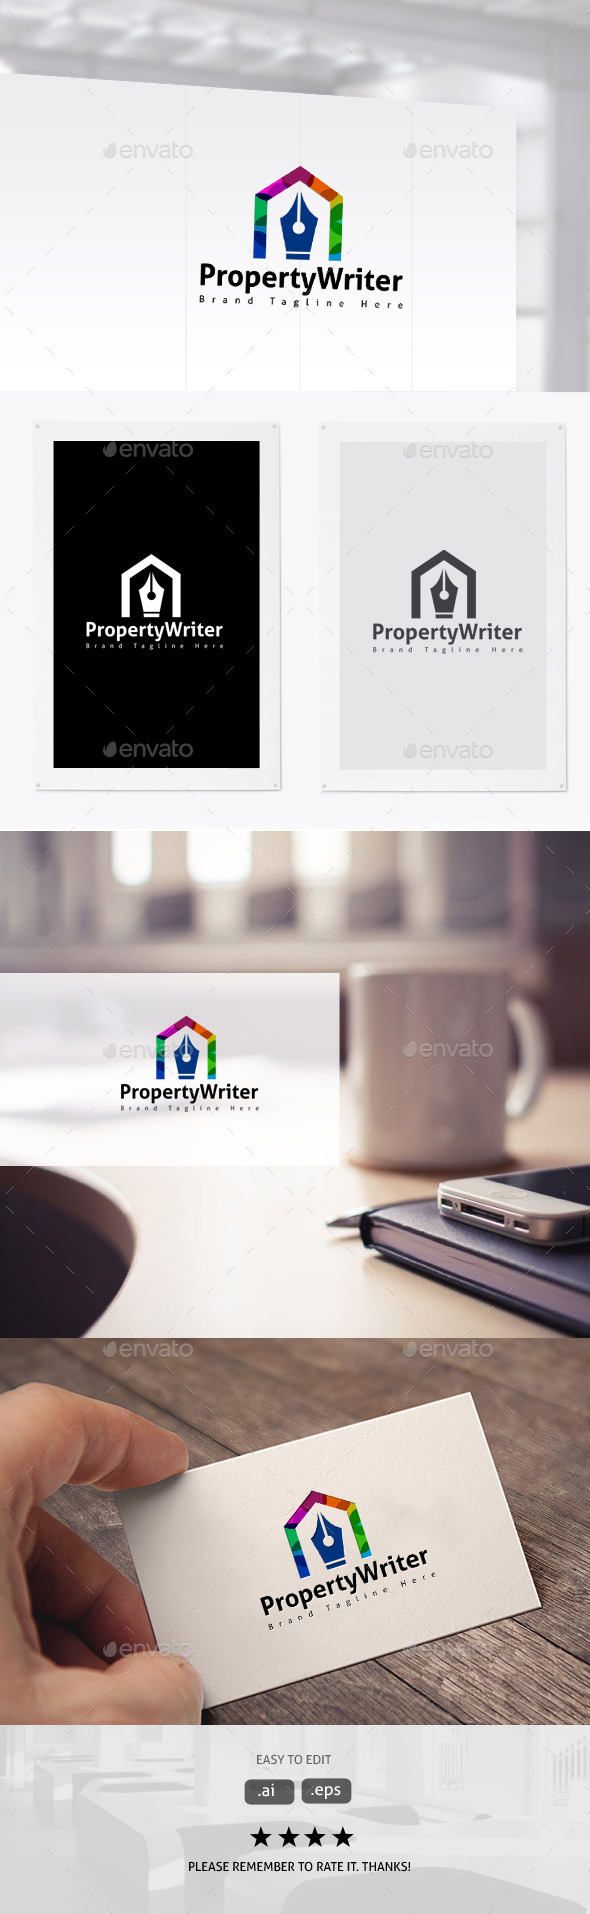 Property Writer